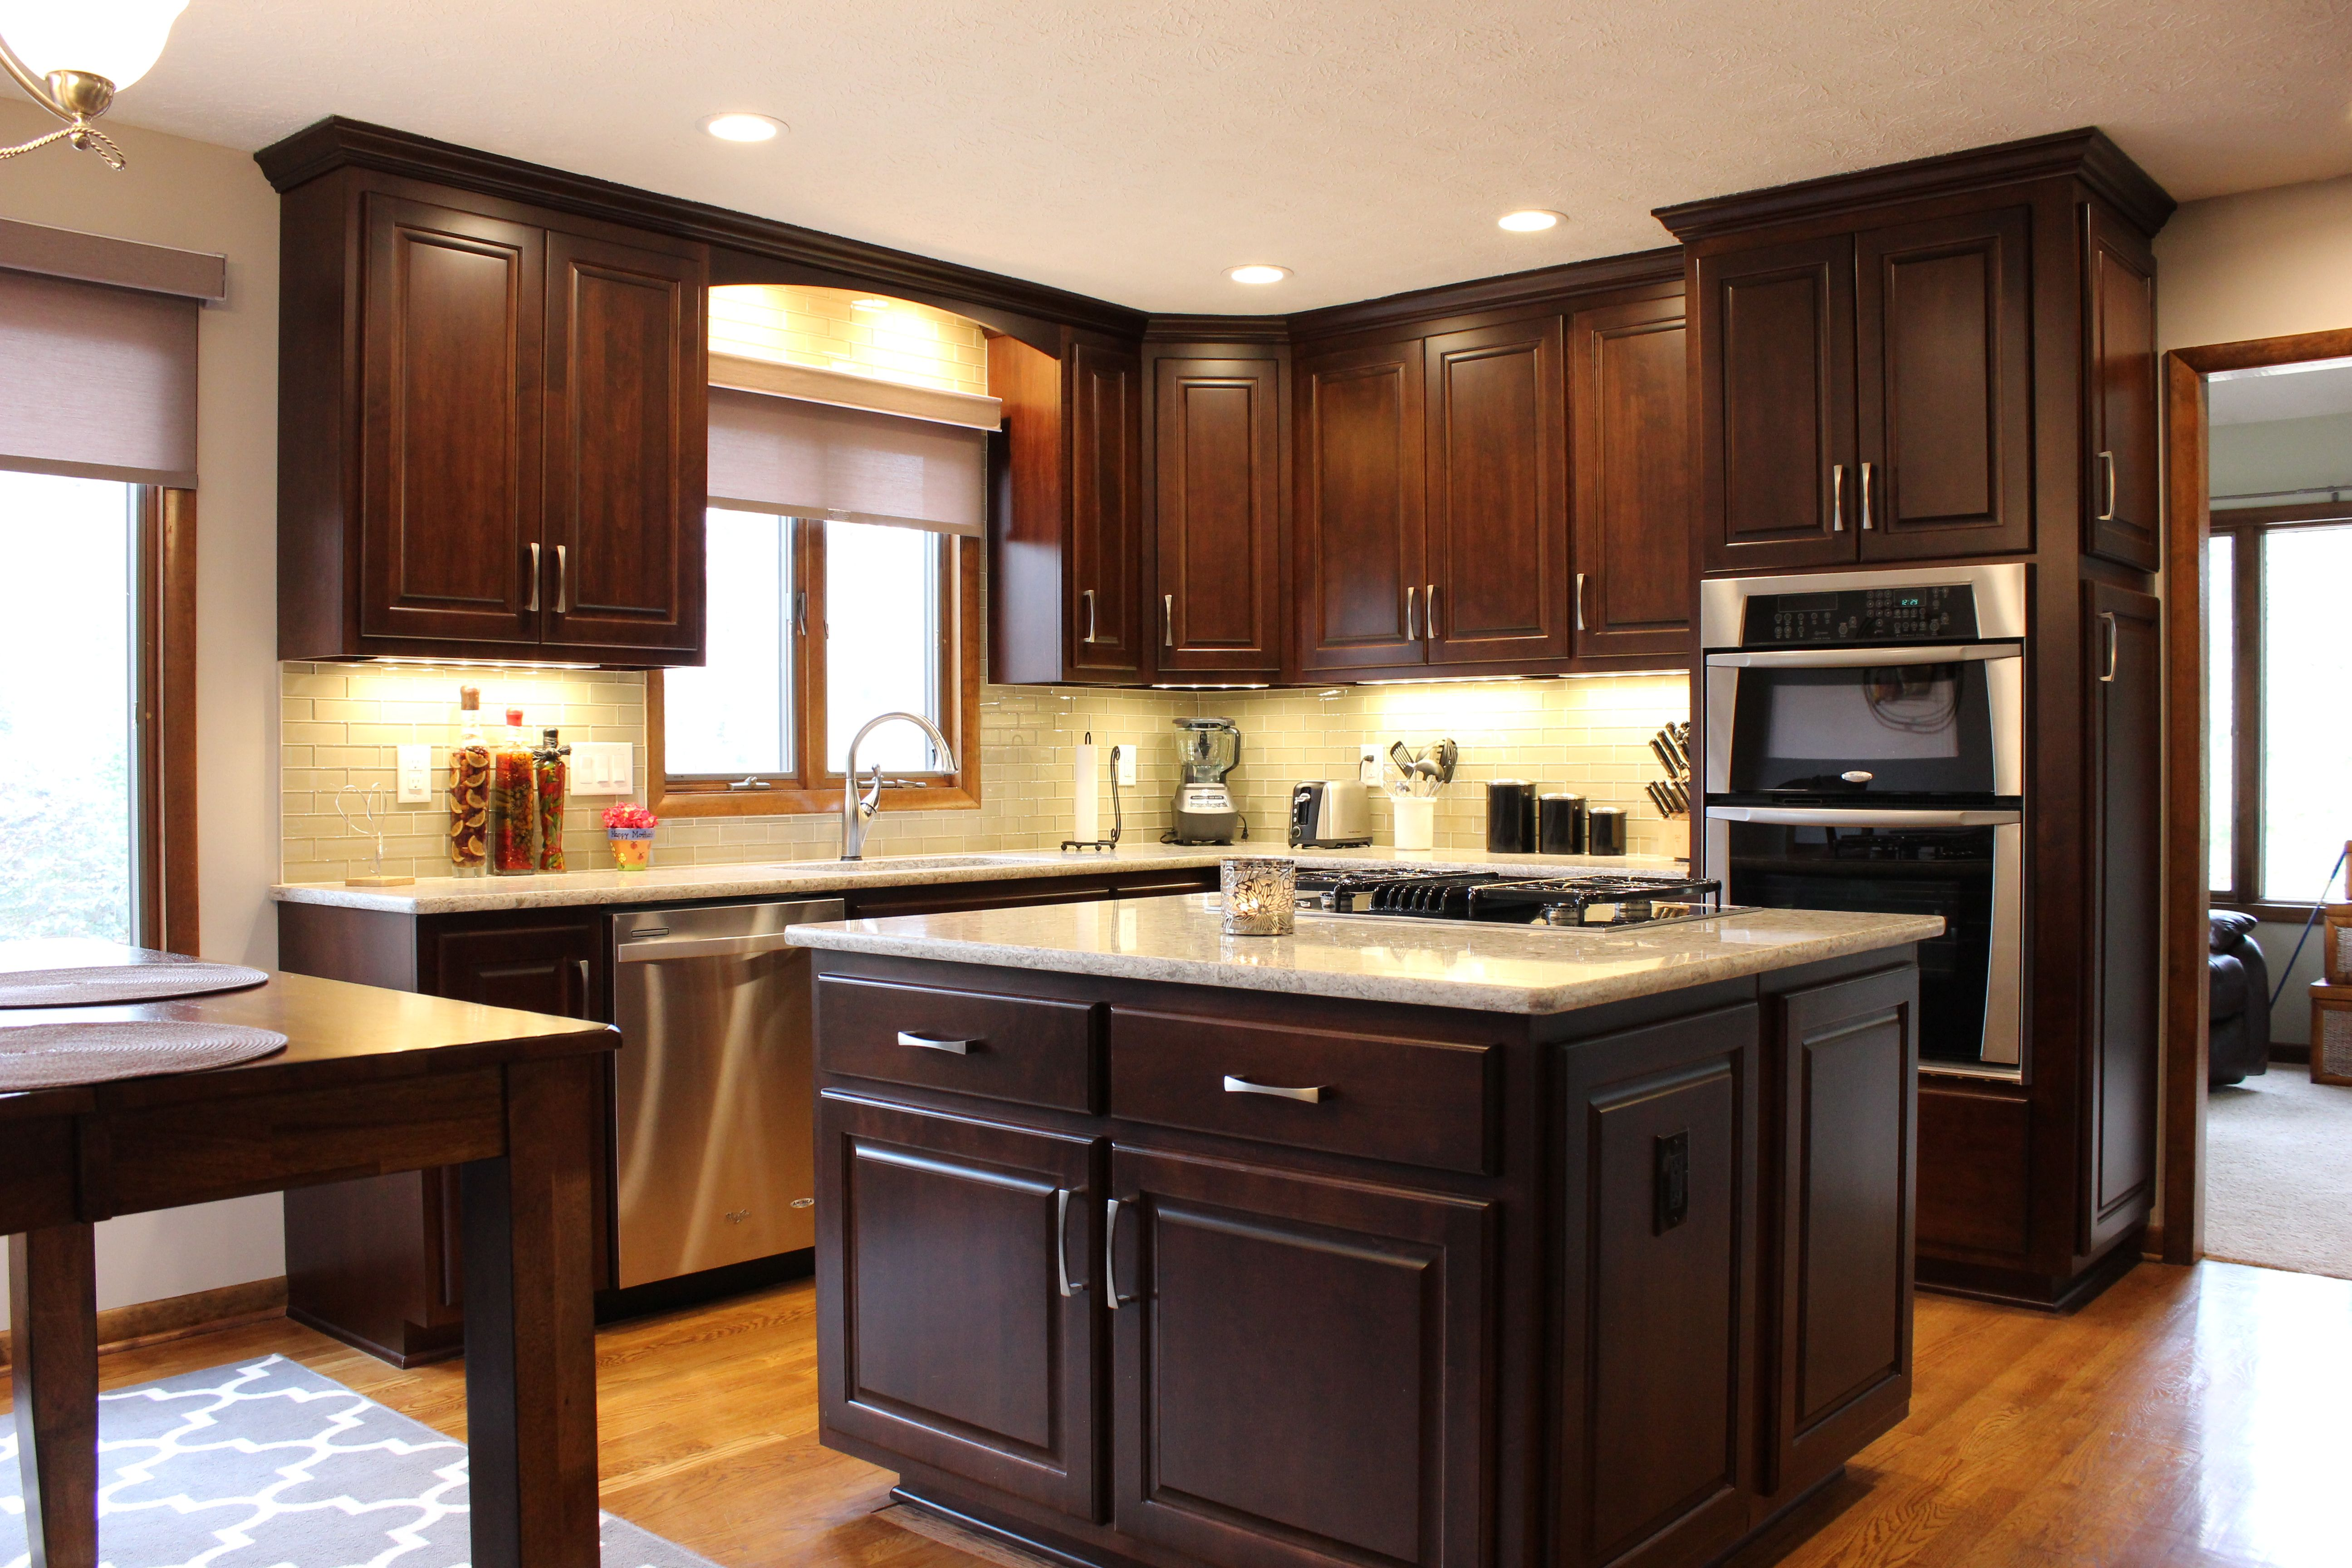 Custom Cabinets With Dark Cherry Stain Island With Storage